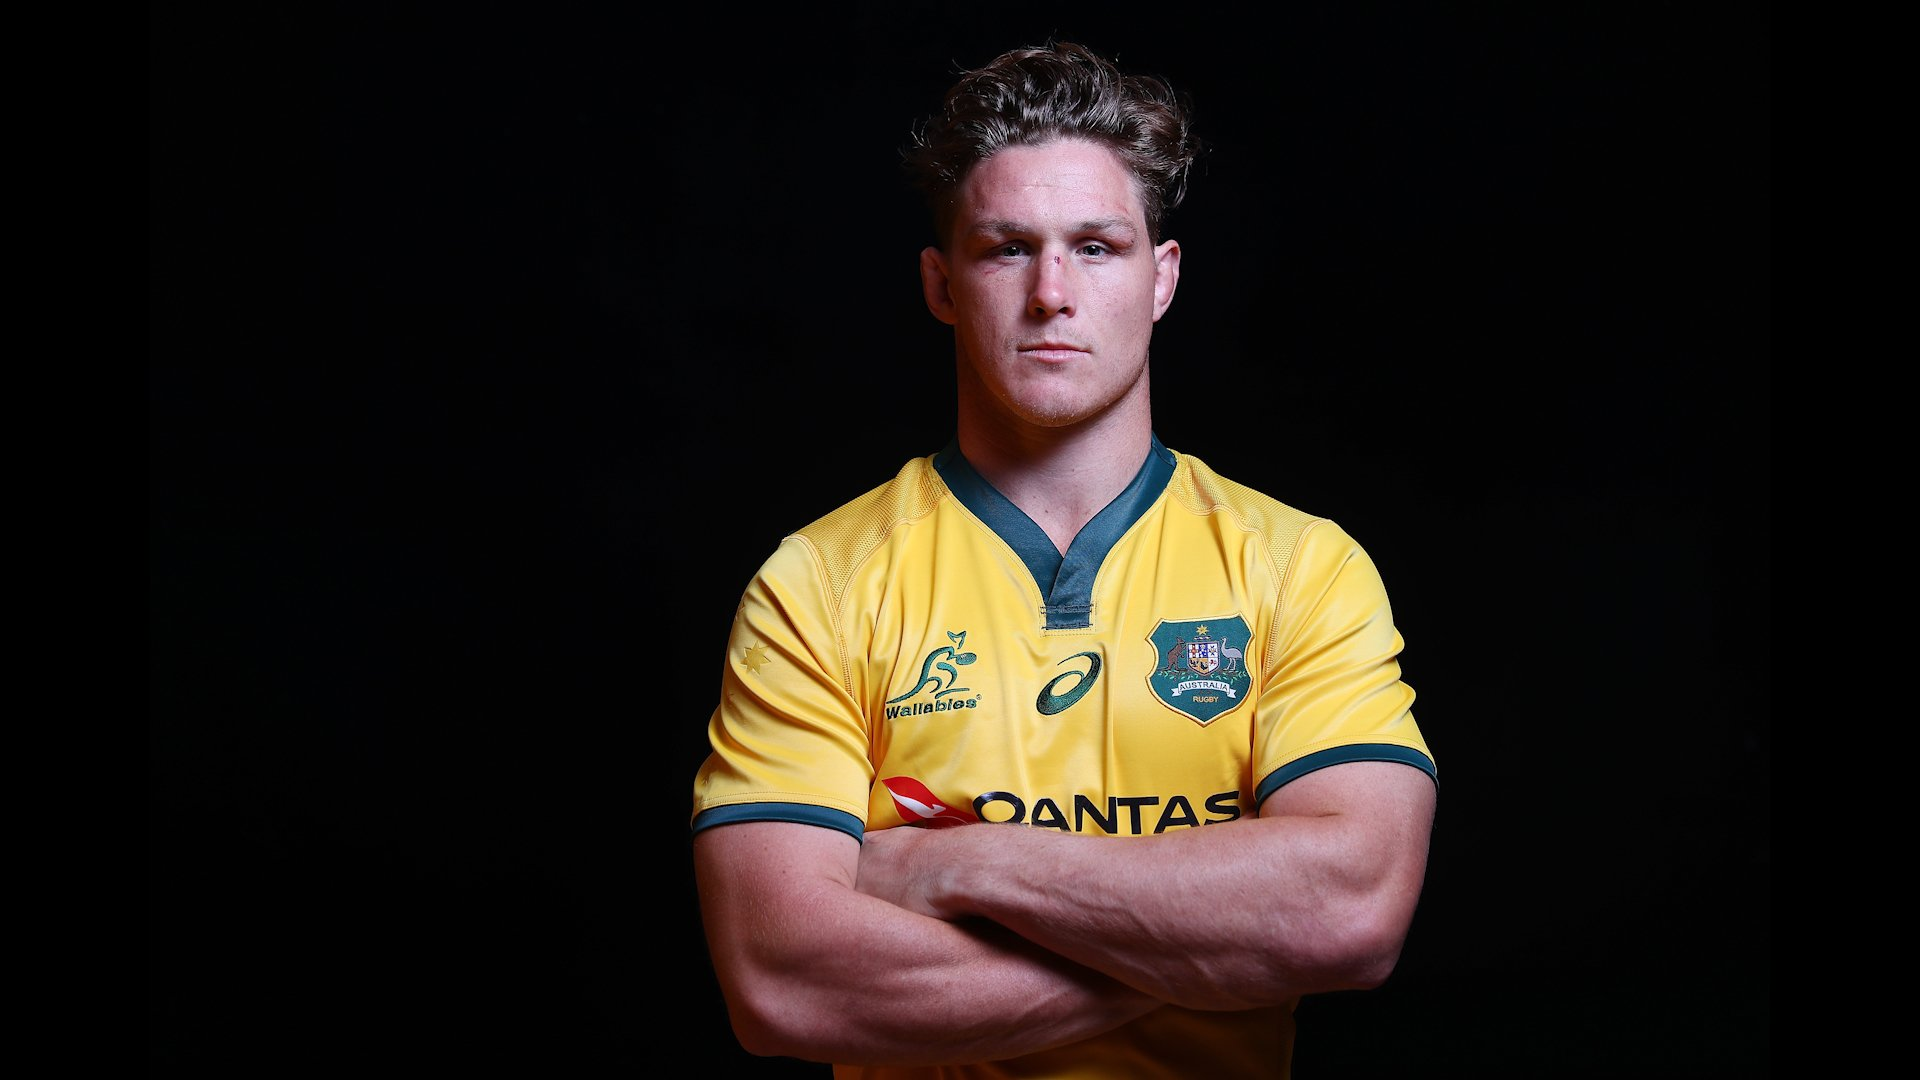 'Would be mad not to have Hooper as captain': Wallabies captain's reappointment draws mixed reaction